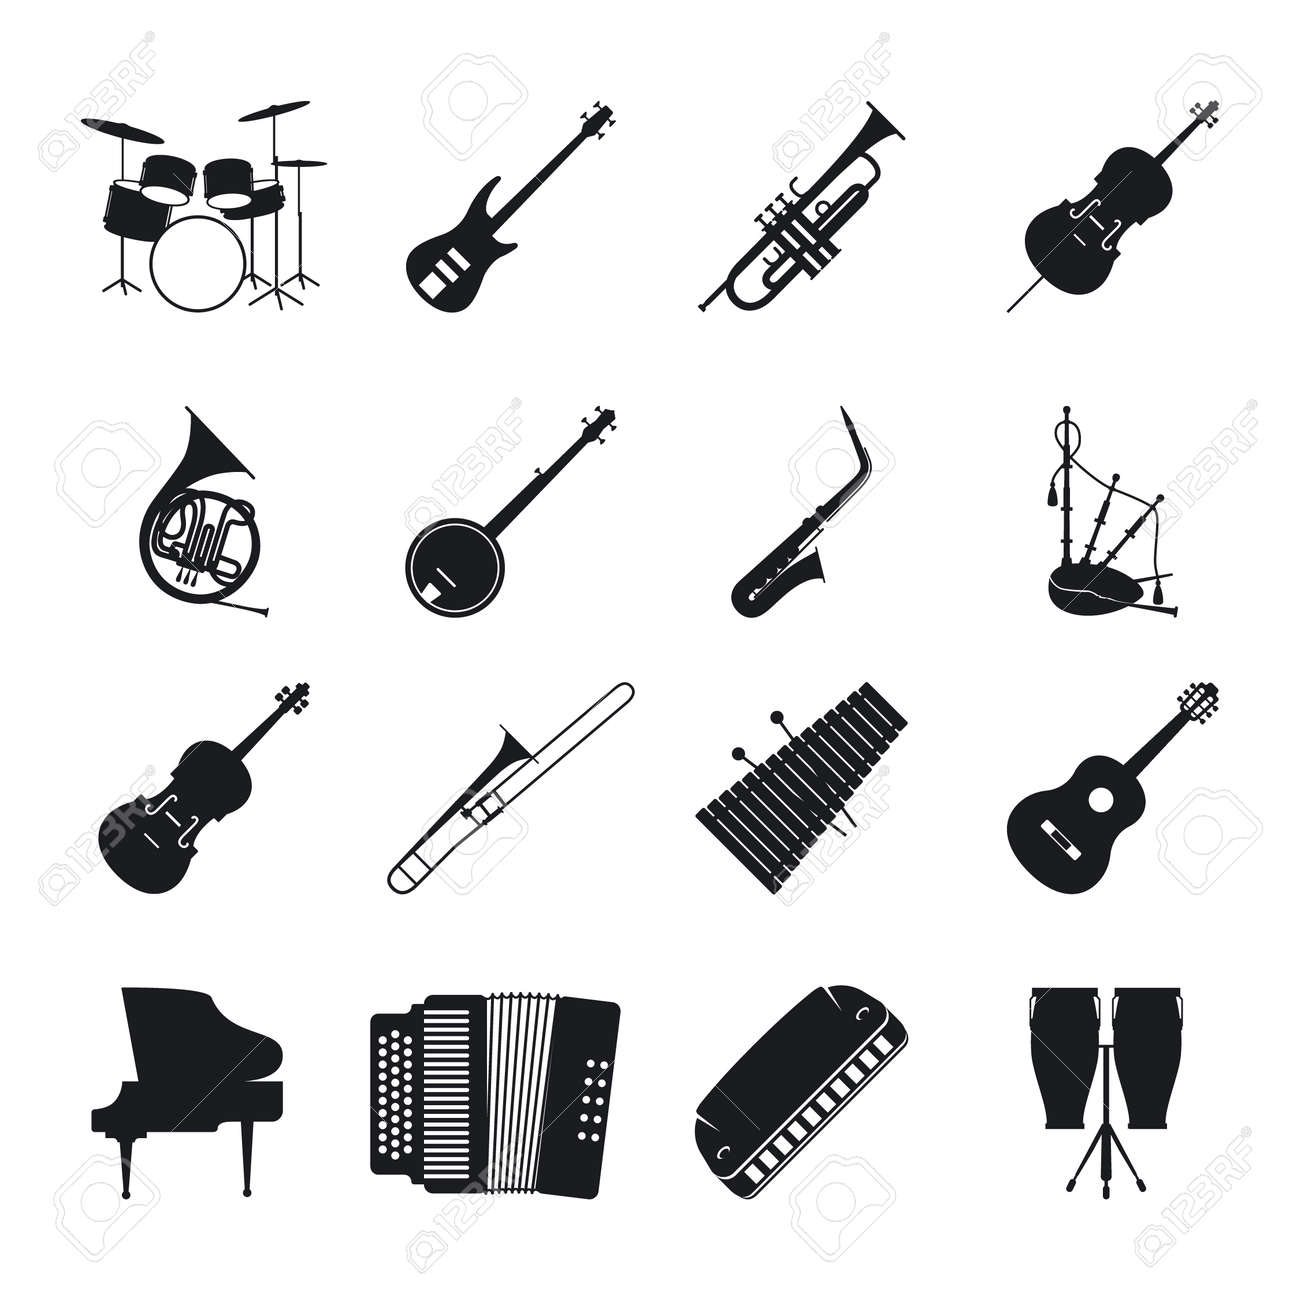 Musical instrument silhouettes for jazz music vector icons set - 165925832